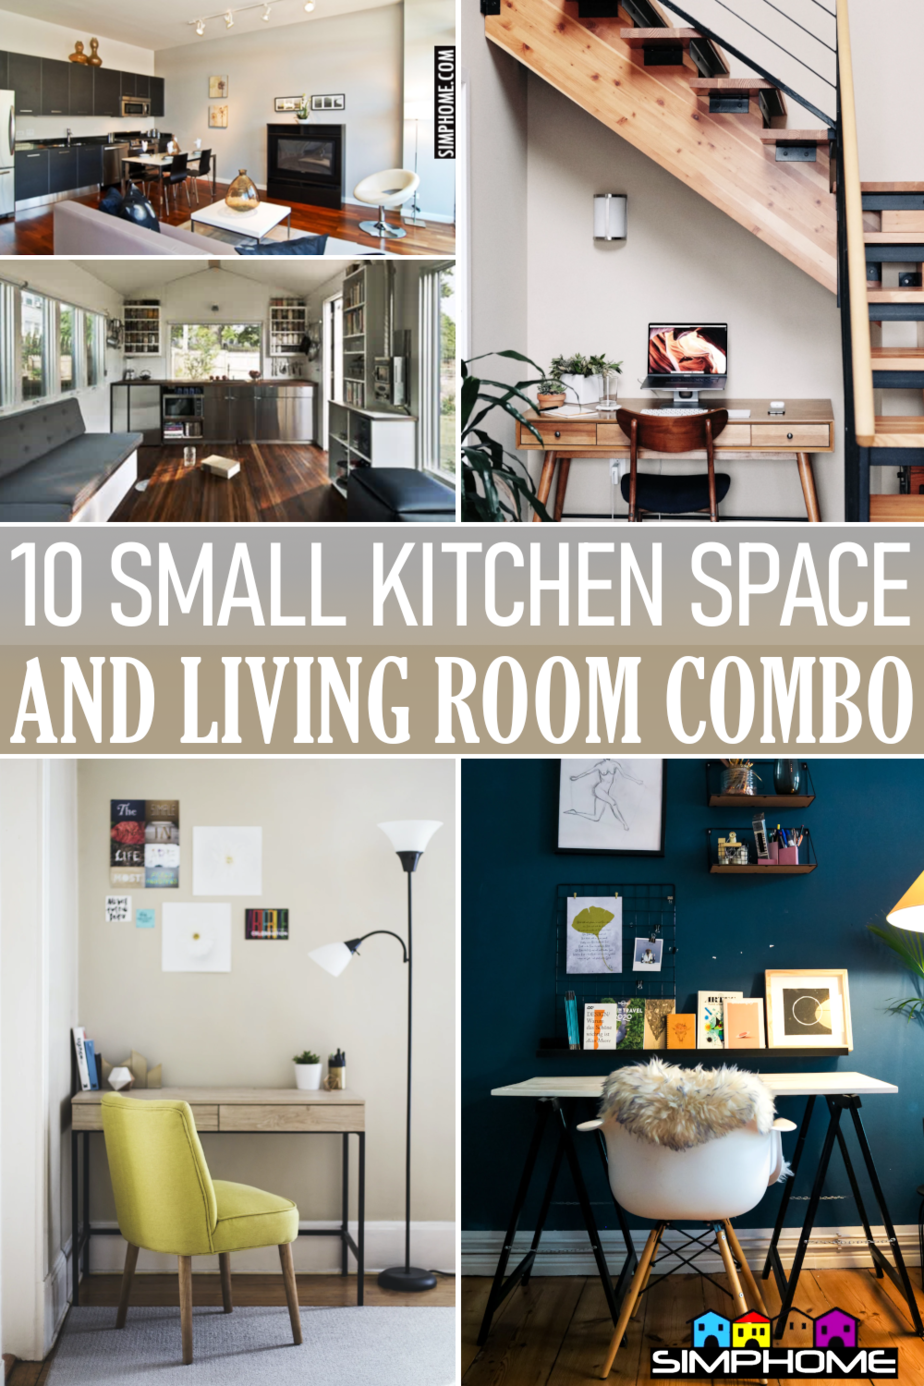 10 small kitchen living room combo via Simphome.comFeatured